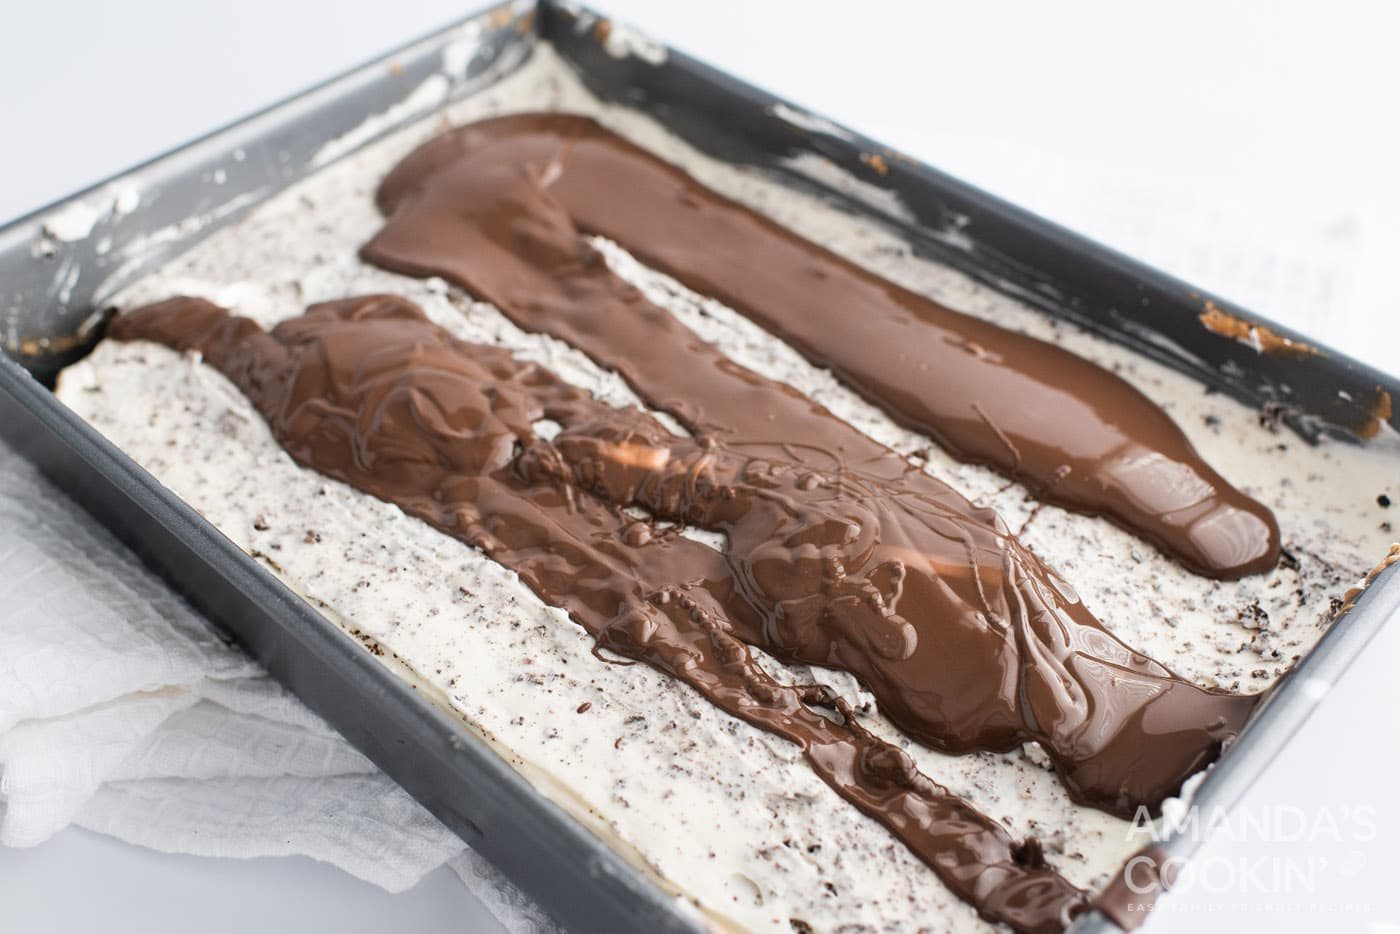 chocolate ganache topping on oreo cheesecake in a pan